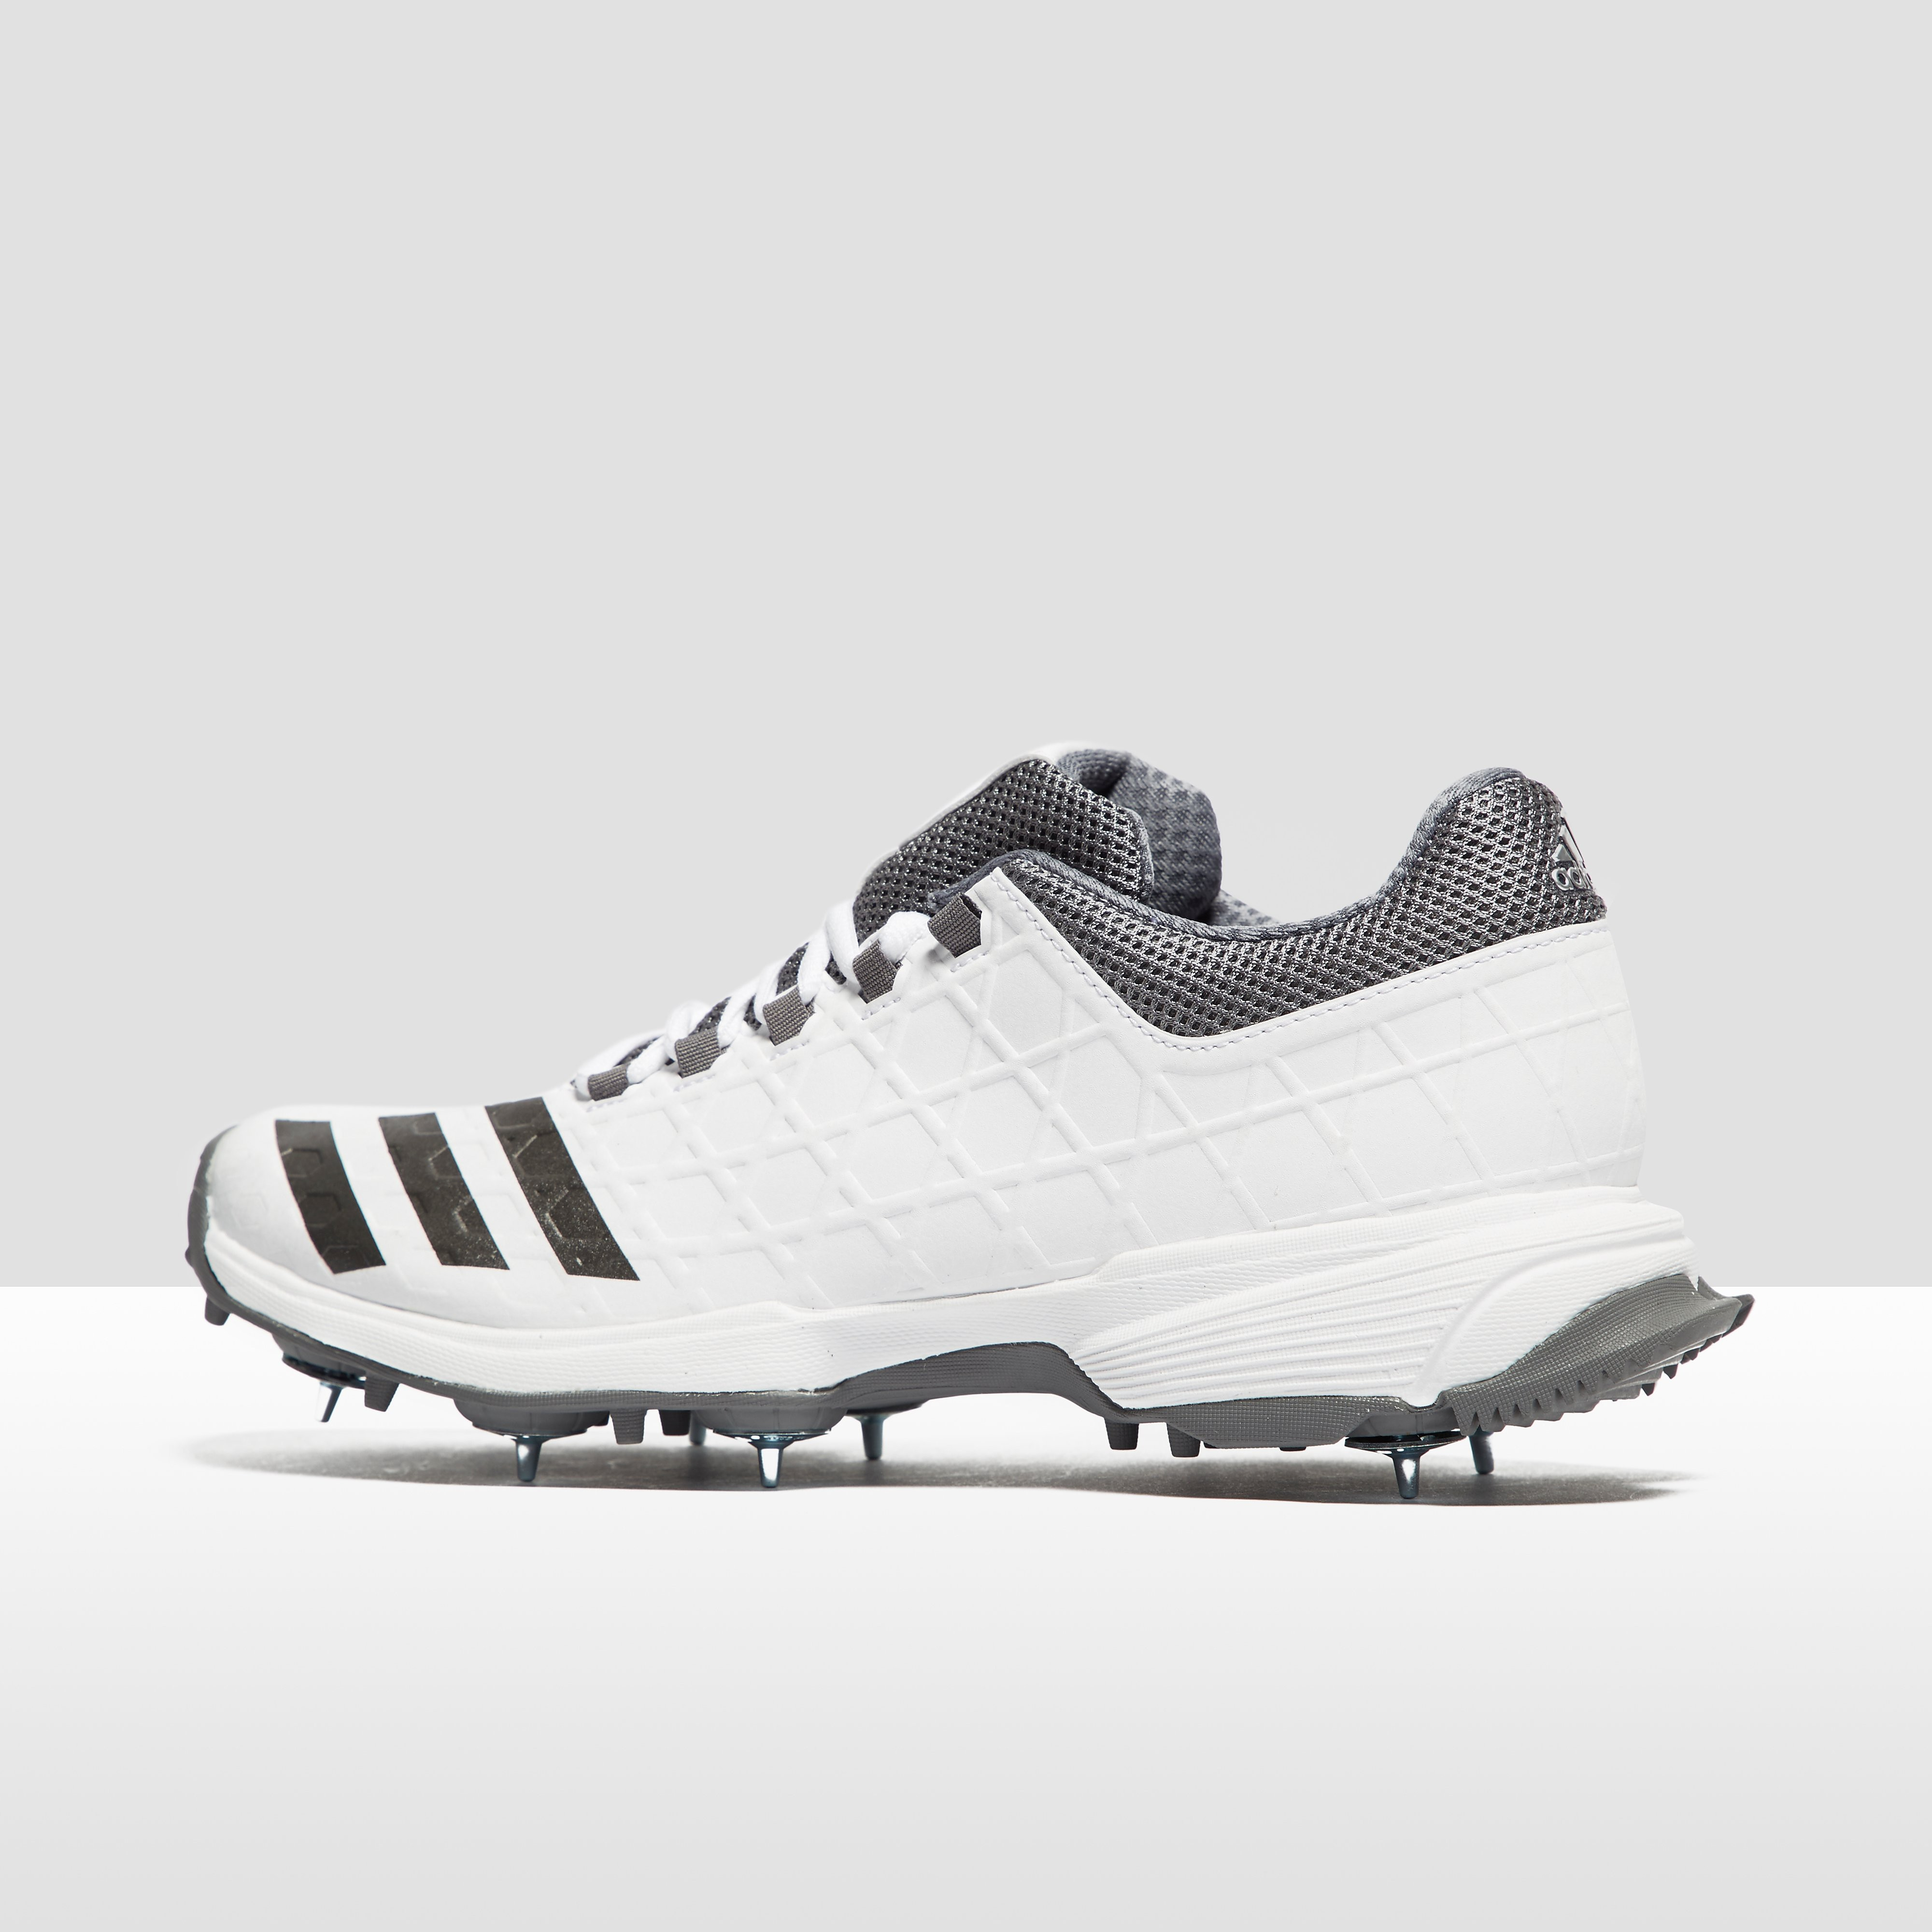 adidas Sl22 Full Spike II Cricket Shoes